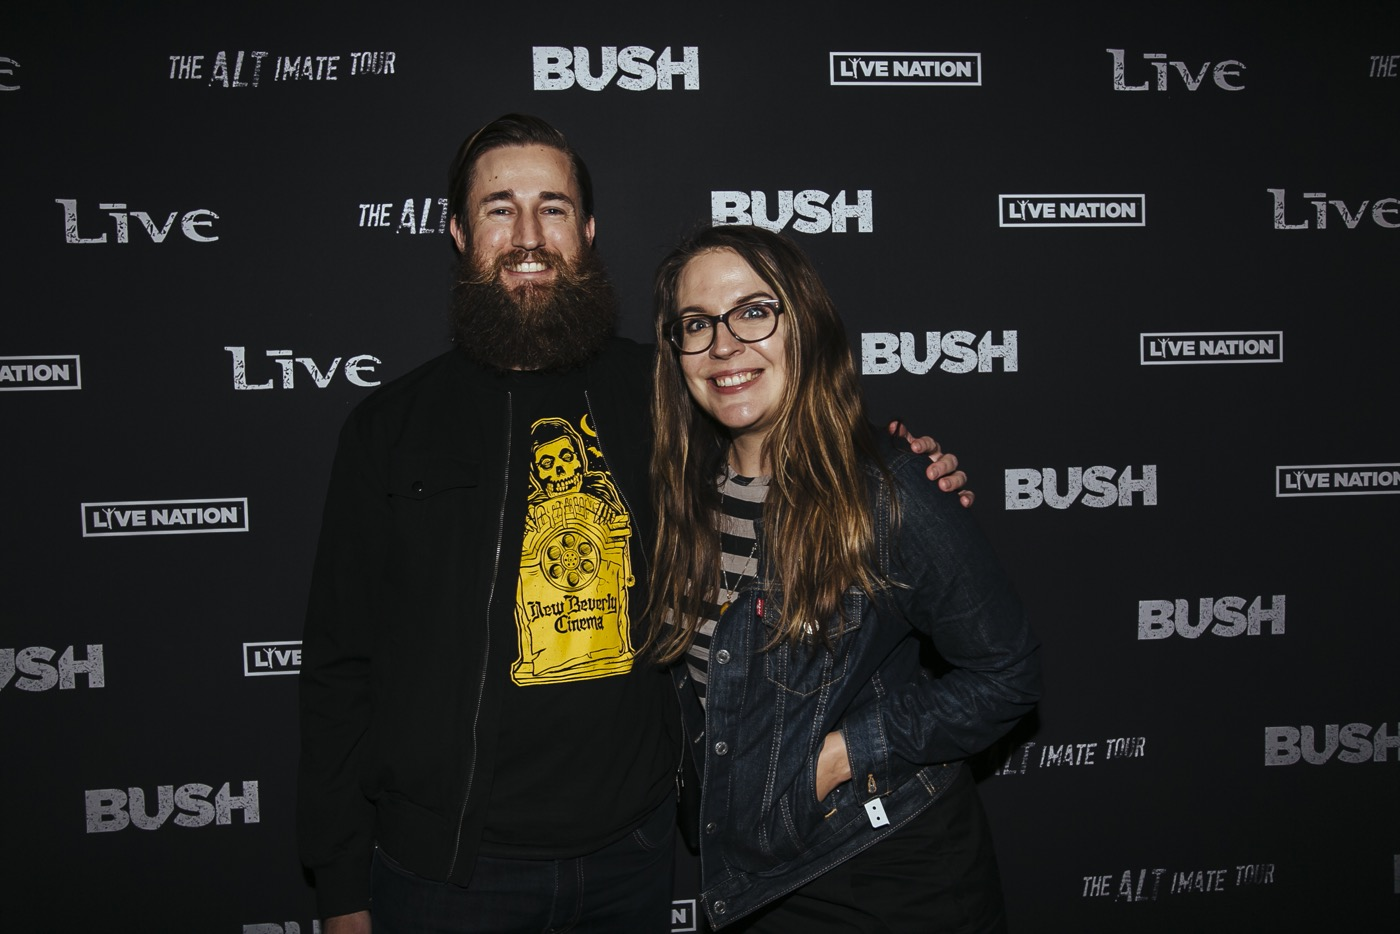 Bush and Live Rock out at the Roxy: Kicking off the ALTimit Tour